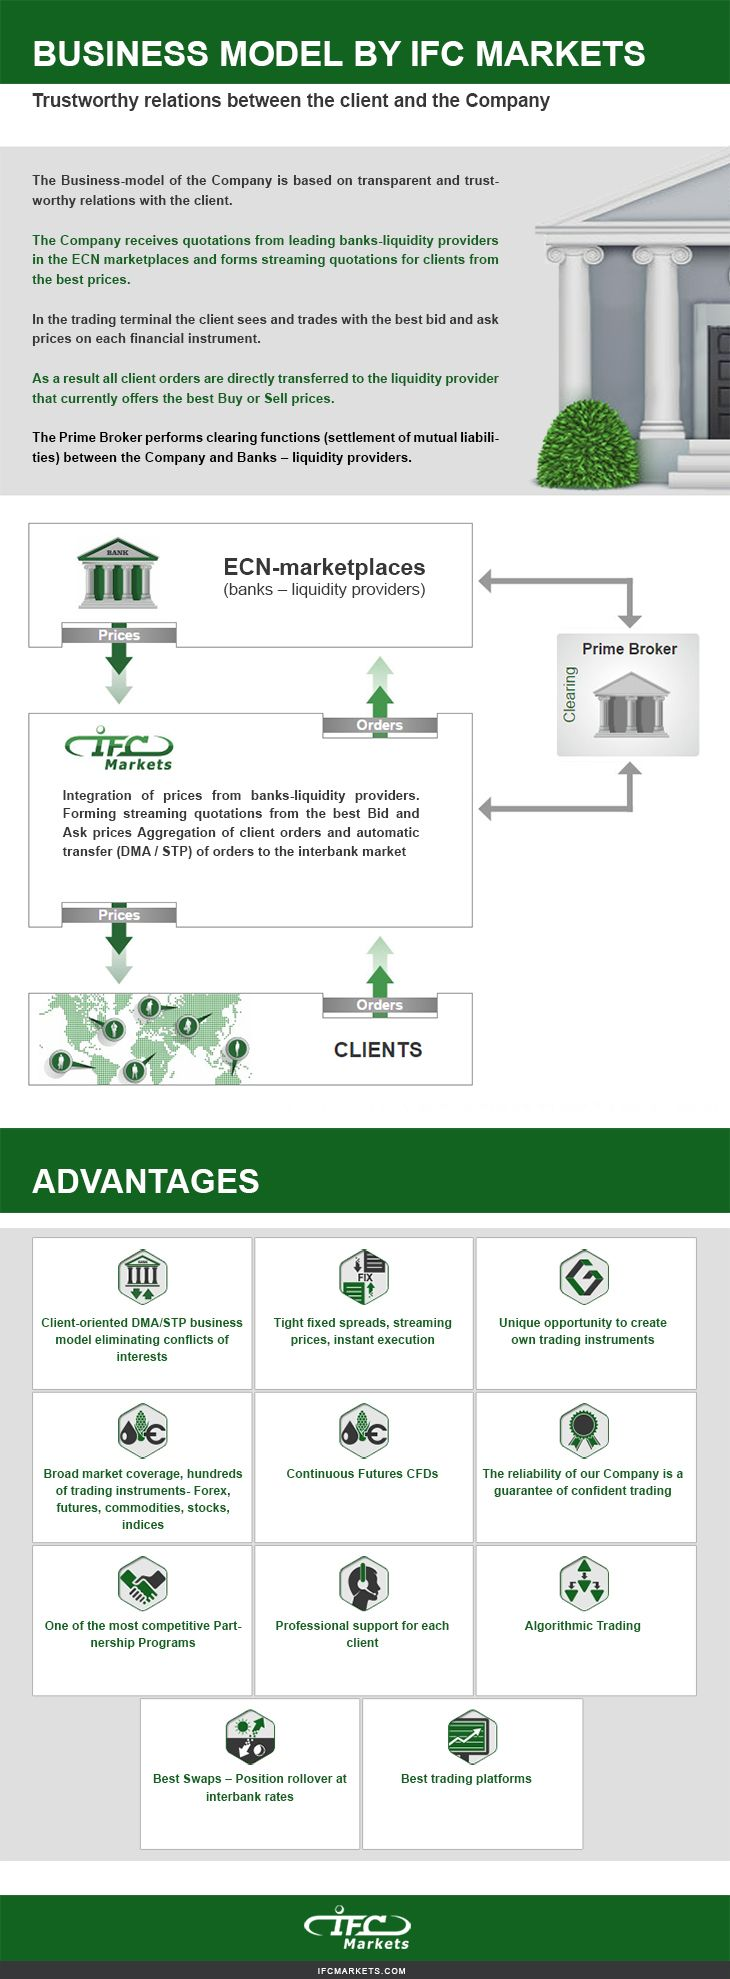 The infographic below shows the Business model, that has been adopted by IFC Markets. Here you can see a trustworthy relations model of the client and the company.